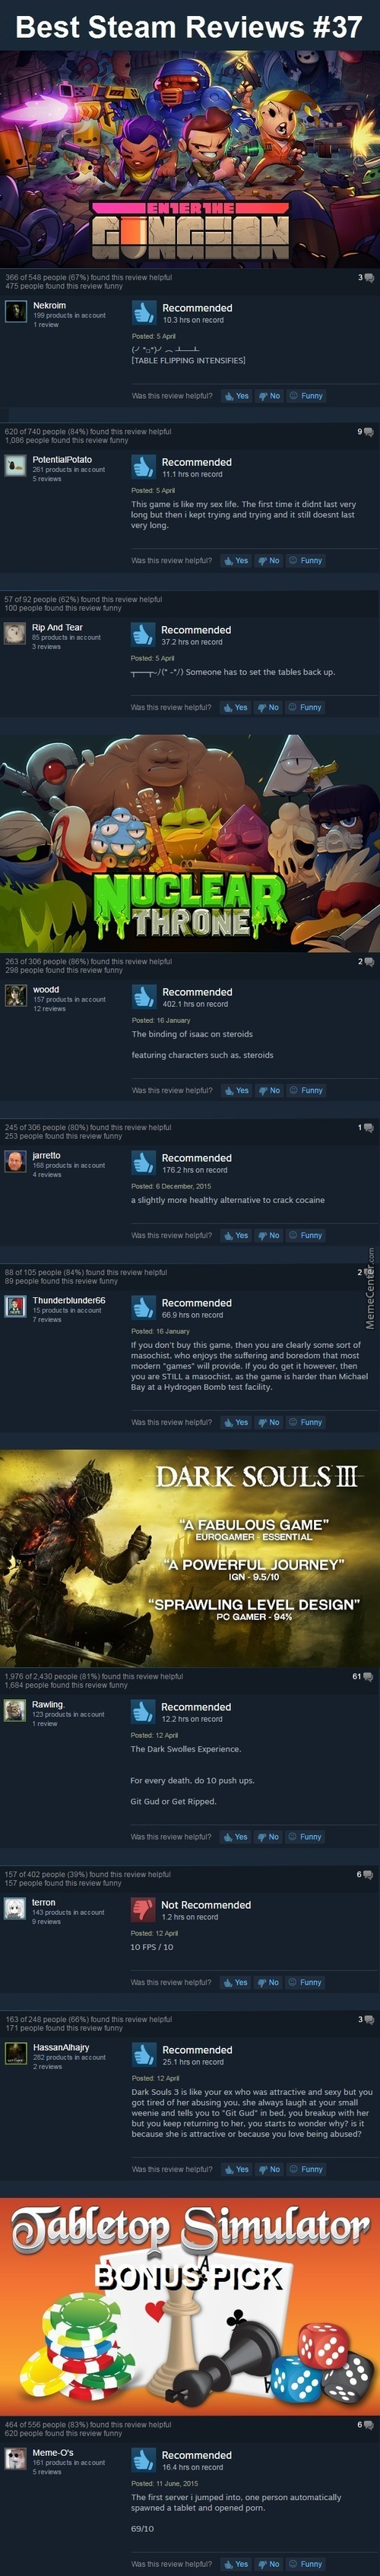 Best Steam Reviews #37 - Still Waiting For My New Motherboard ;_;